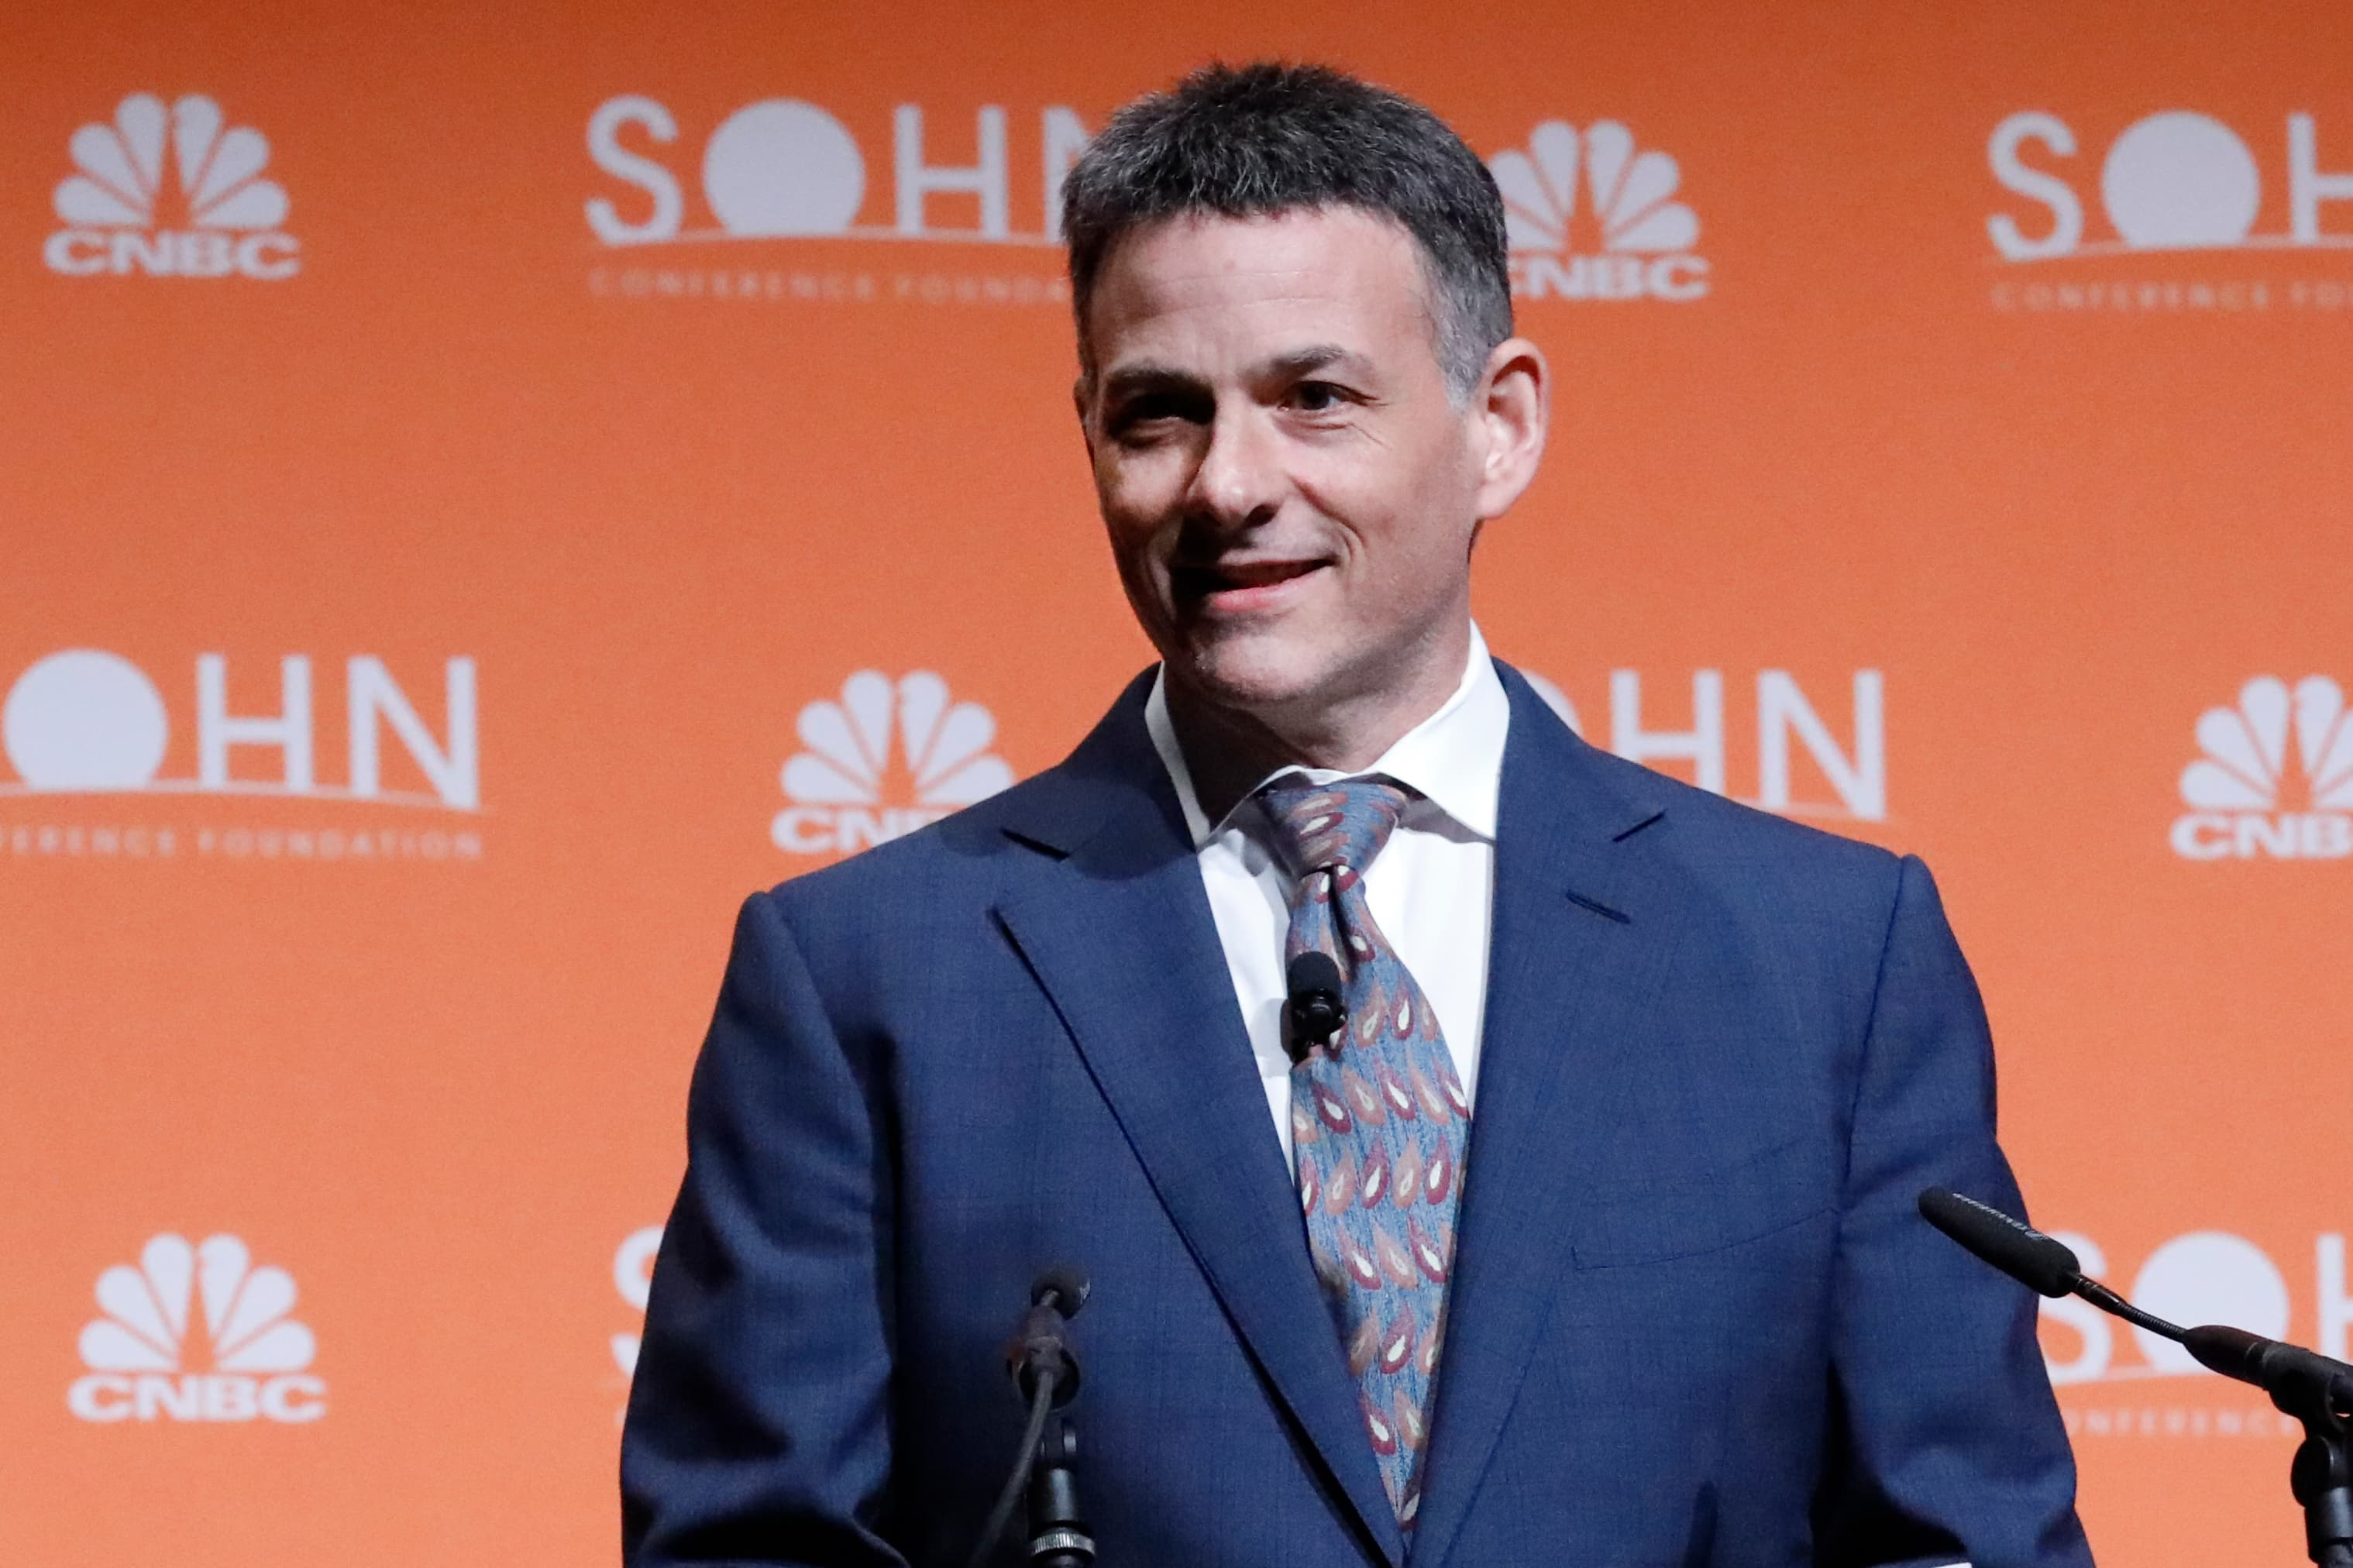 David Einhorn makes a case for copper to ride renewable energy trend, recommends two miner stocks